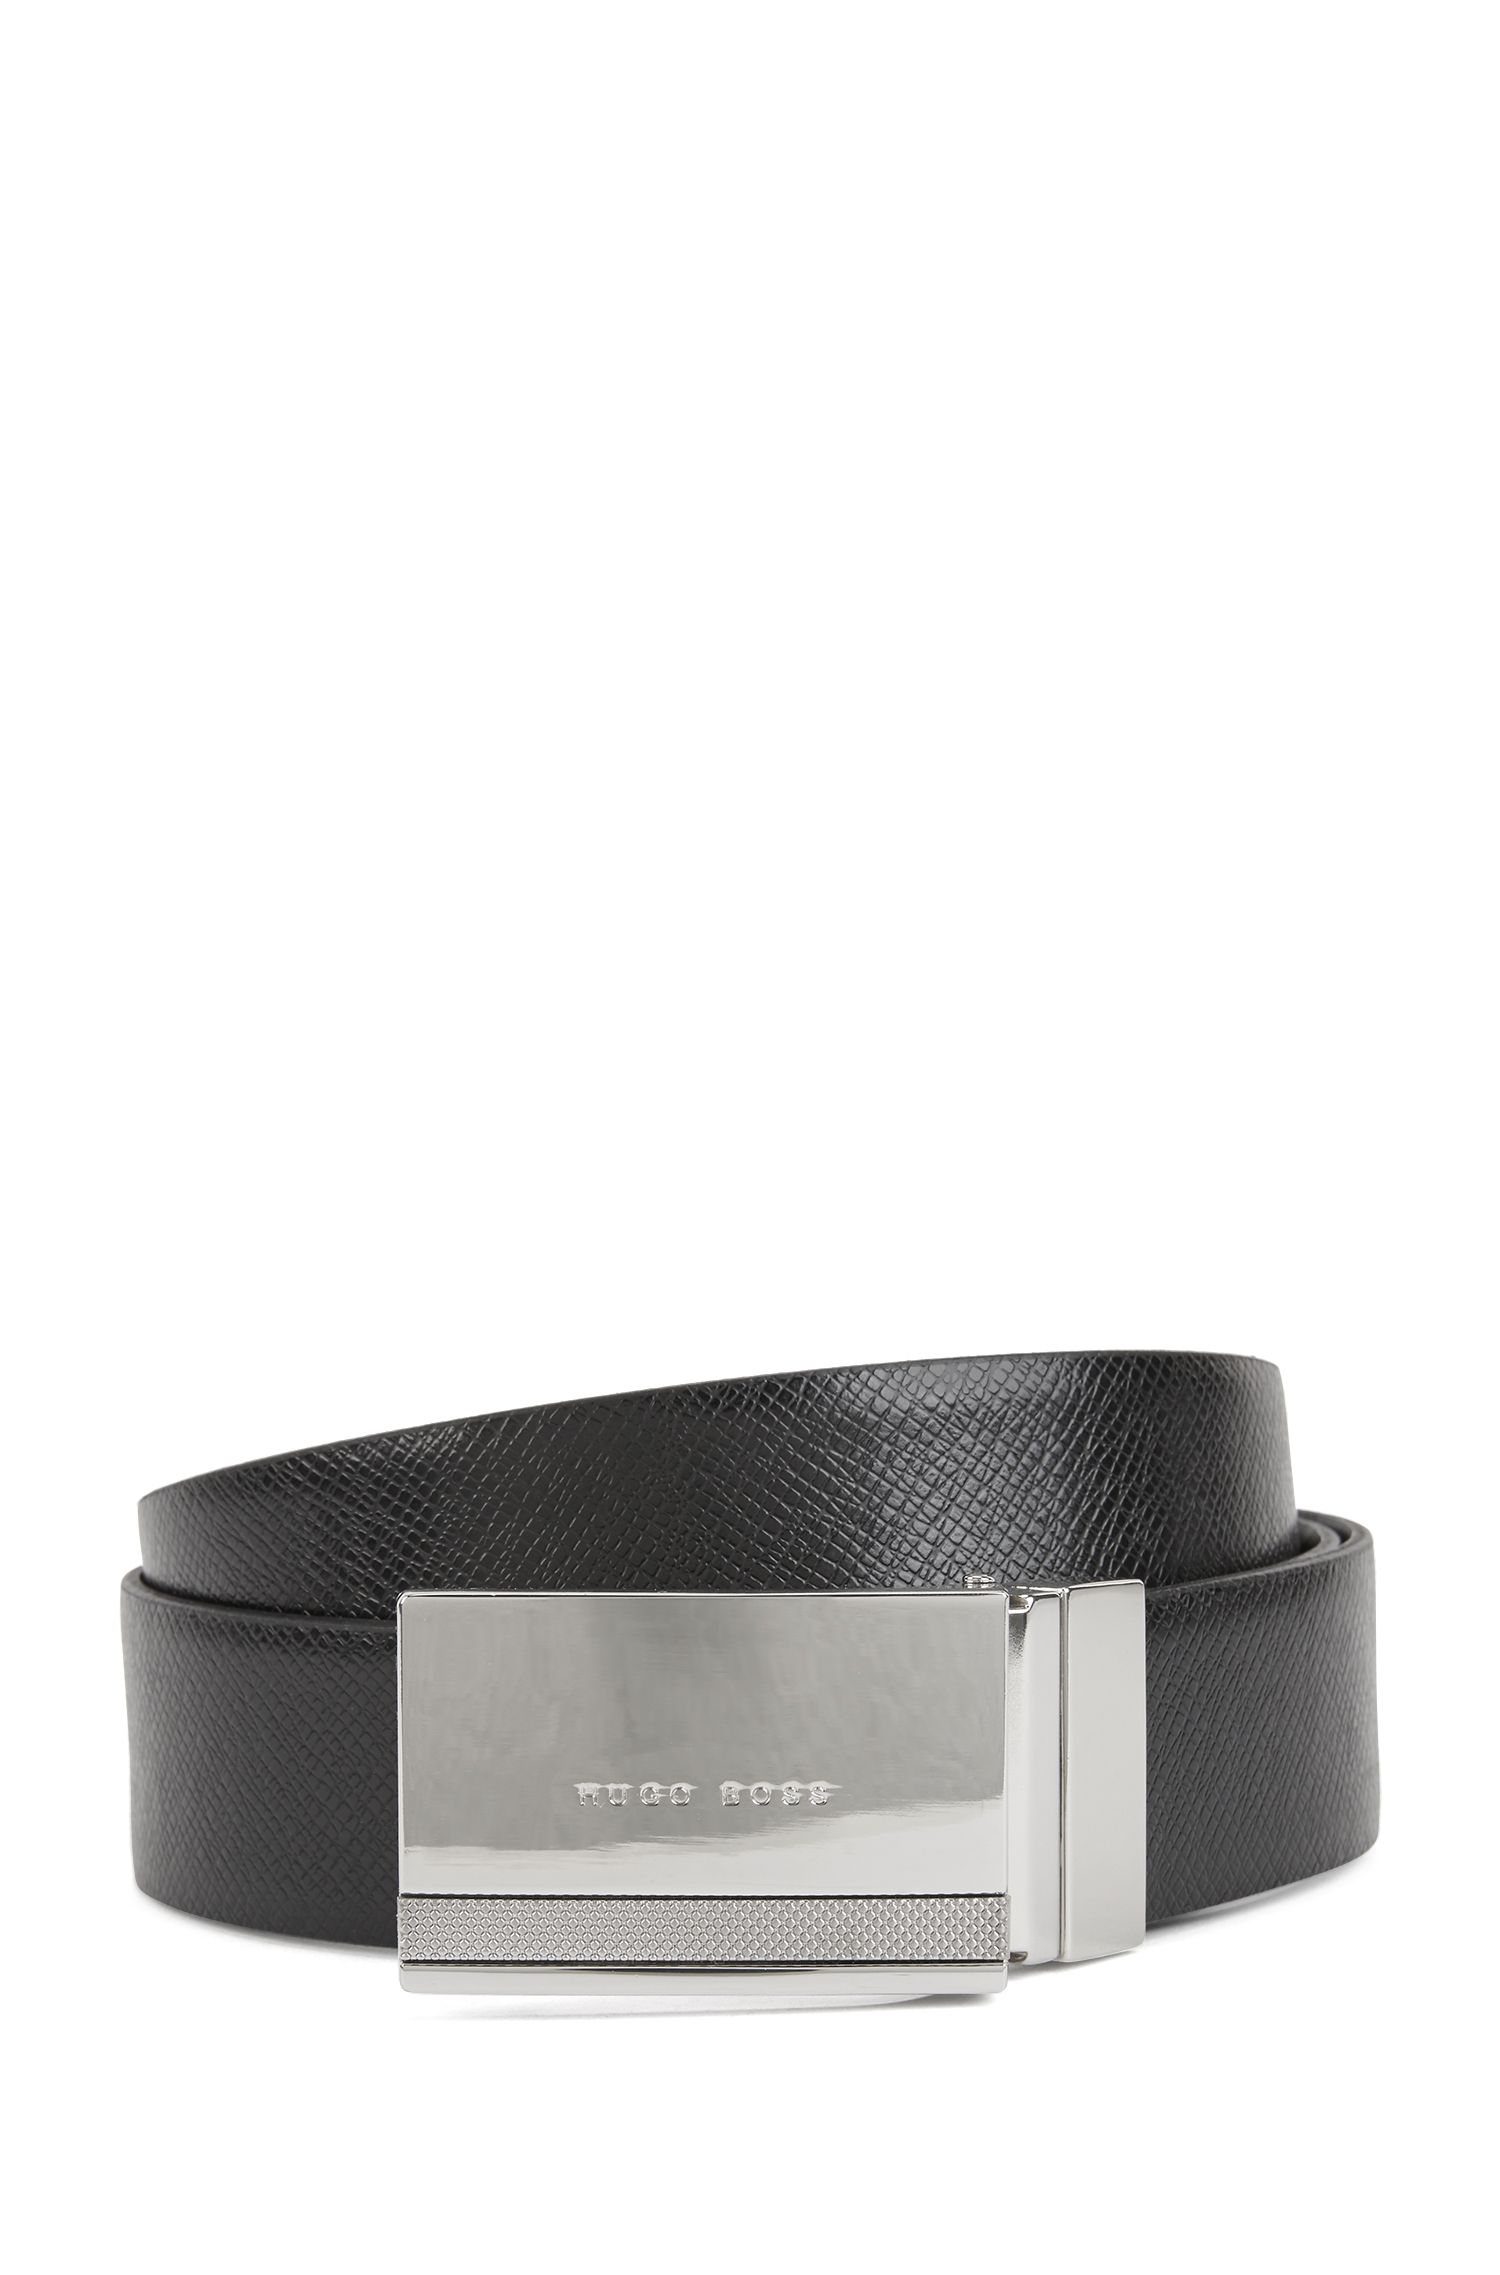 Reversible leather belt with double buckle option, Black